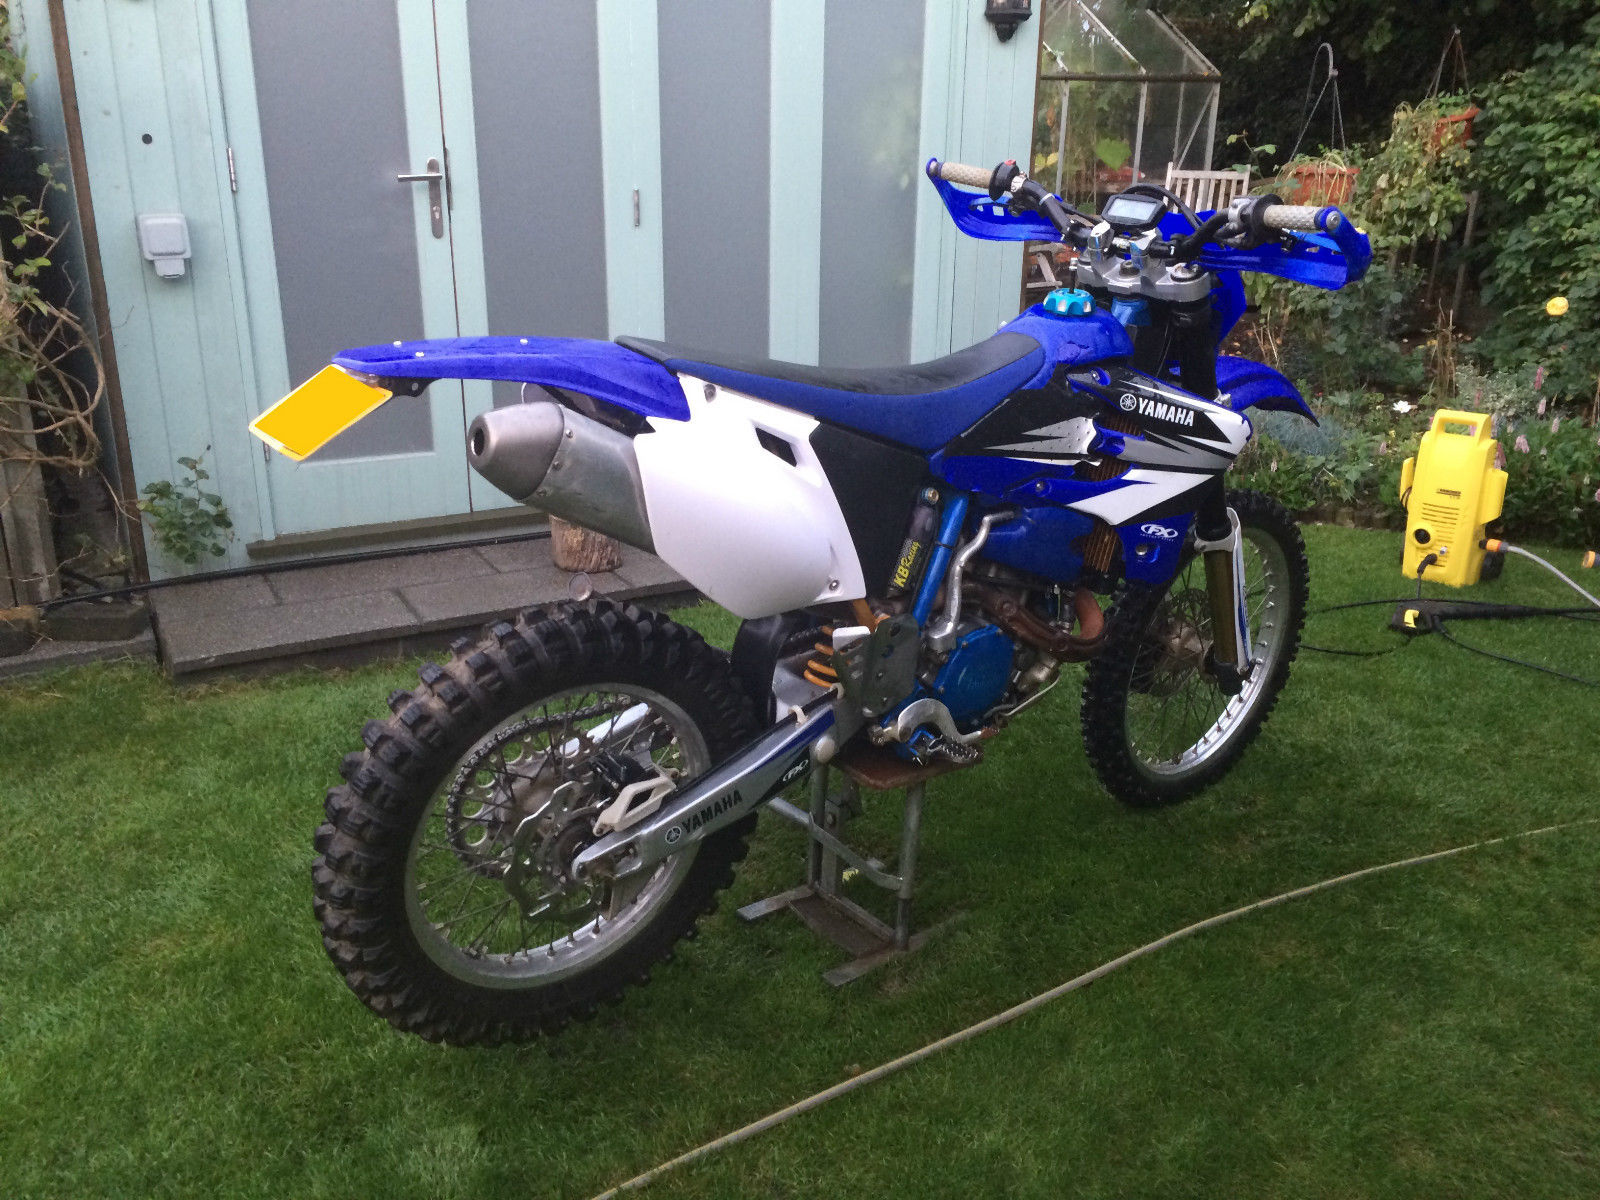 1999 yamaha wr400 f enduro green lane motorcycle. Black Bedroom Furniture Sets. Home Design Ideas